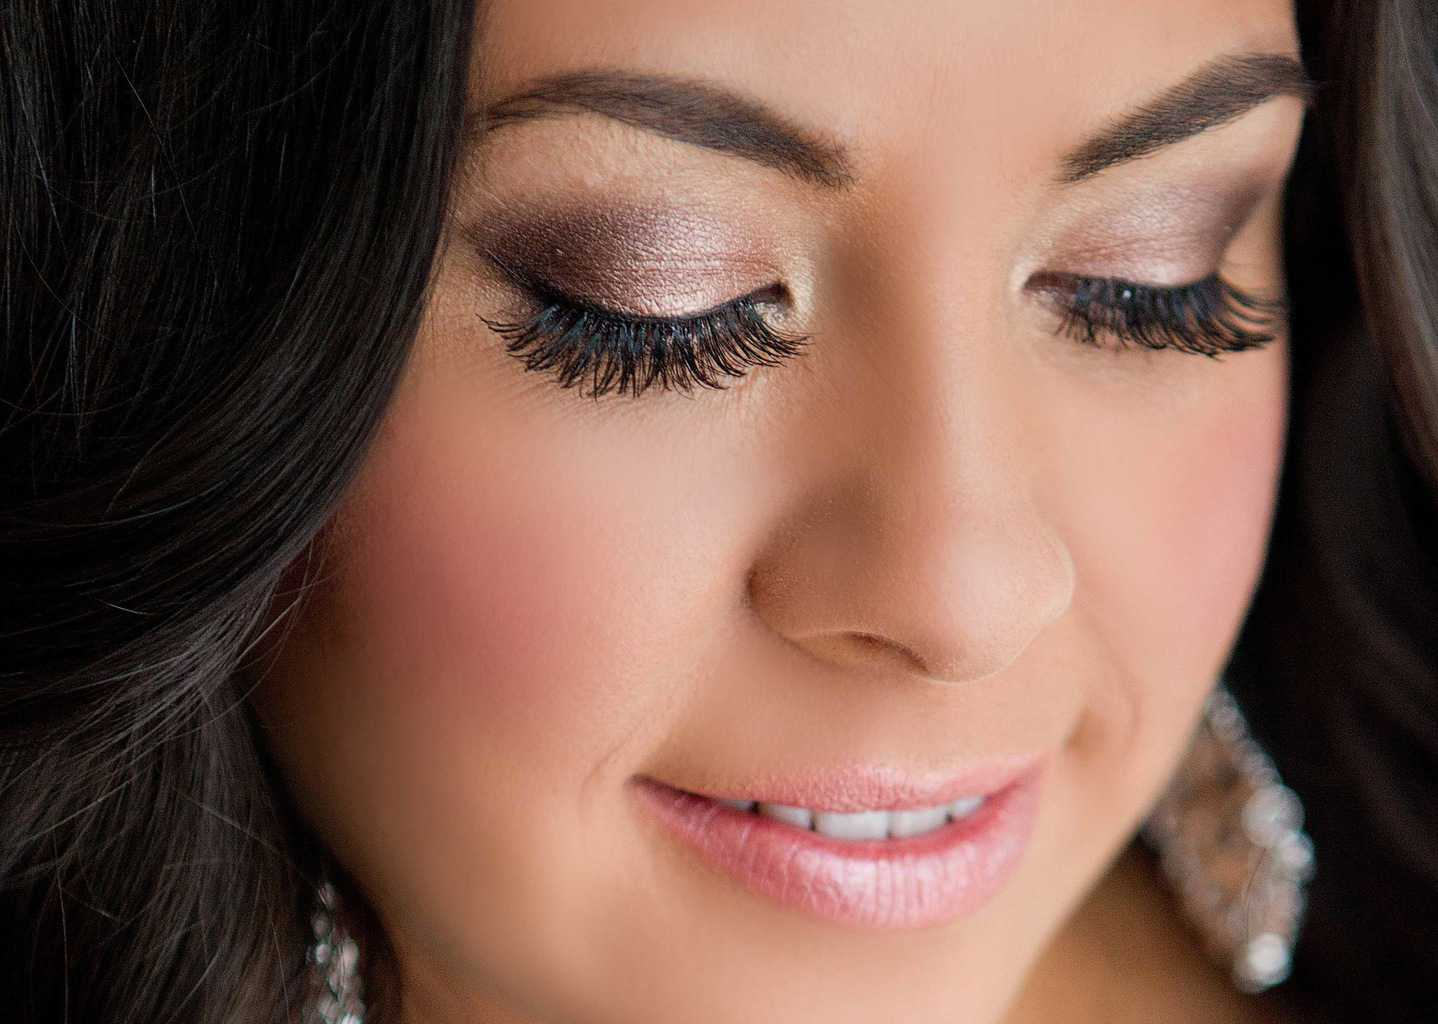 Ideas For Wedding Makeup : 10 Beauty Tips for Her on the Big Day - TwoFoot Creative